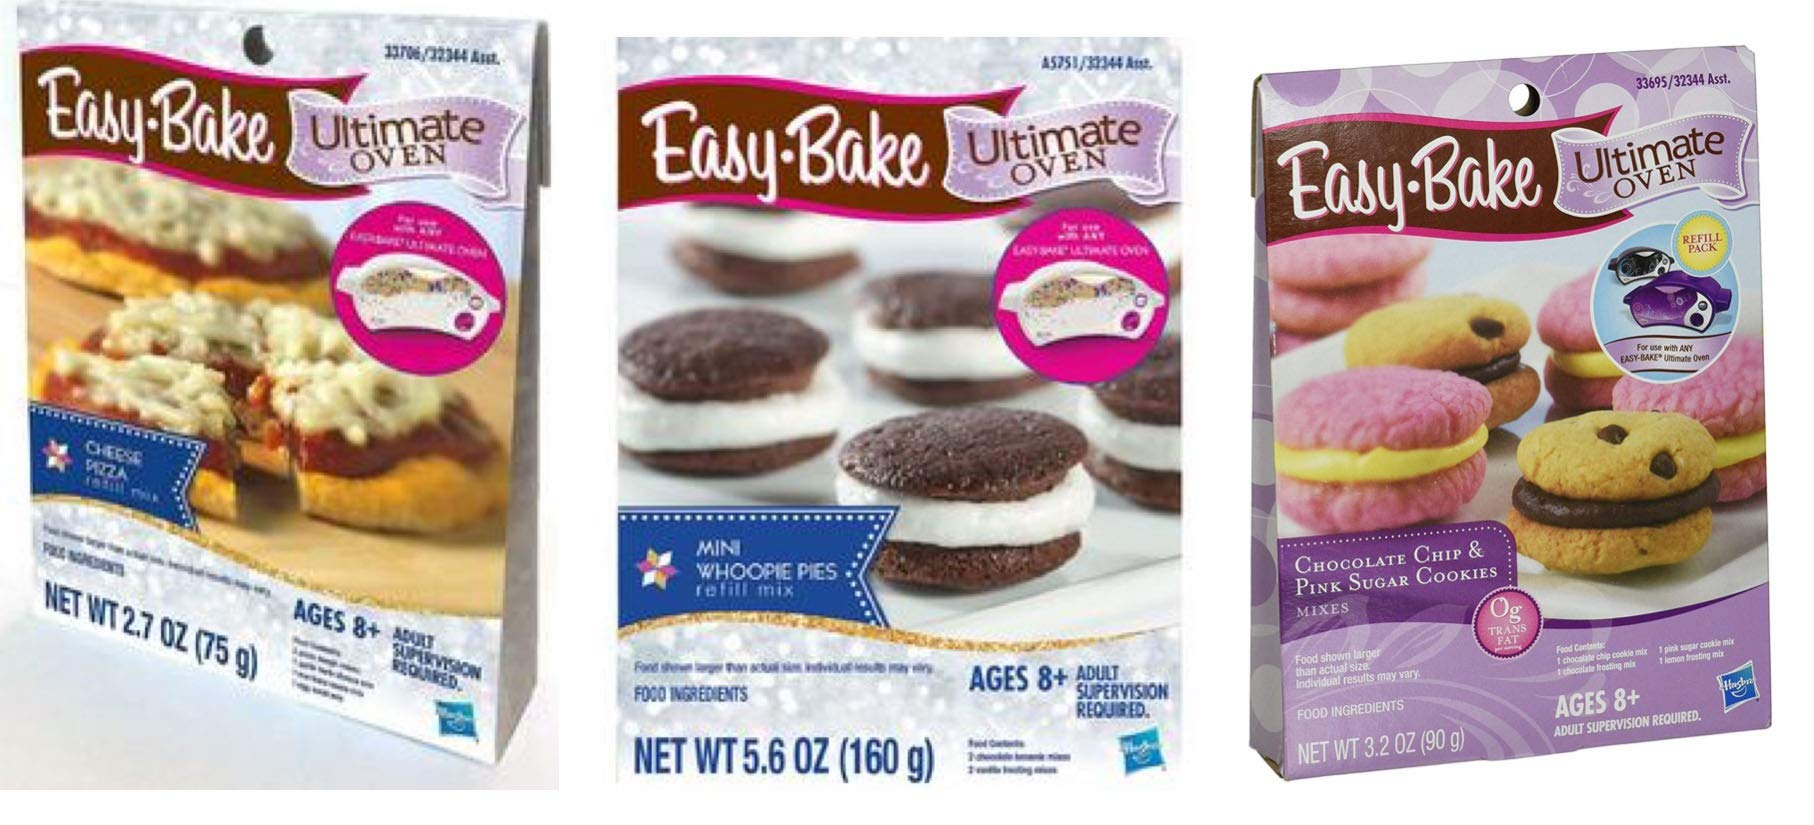 InterC Set of 3 Easy-Bake Oven Mixes Refills -Pizza, Chocolate Chip and Sugar Cookies, Whoopie Pies by InterC